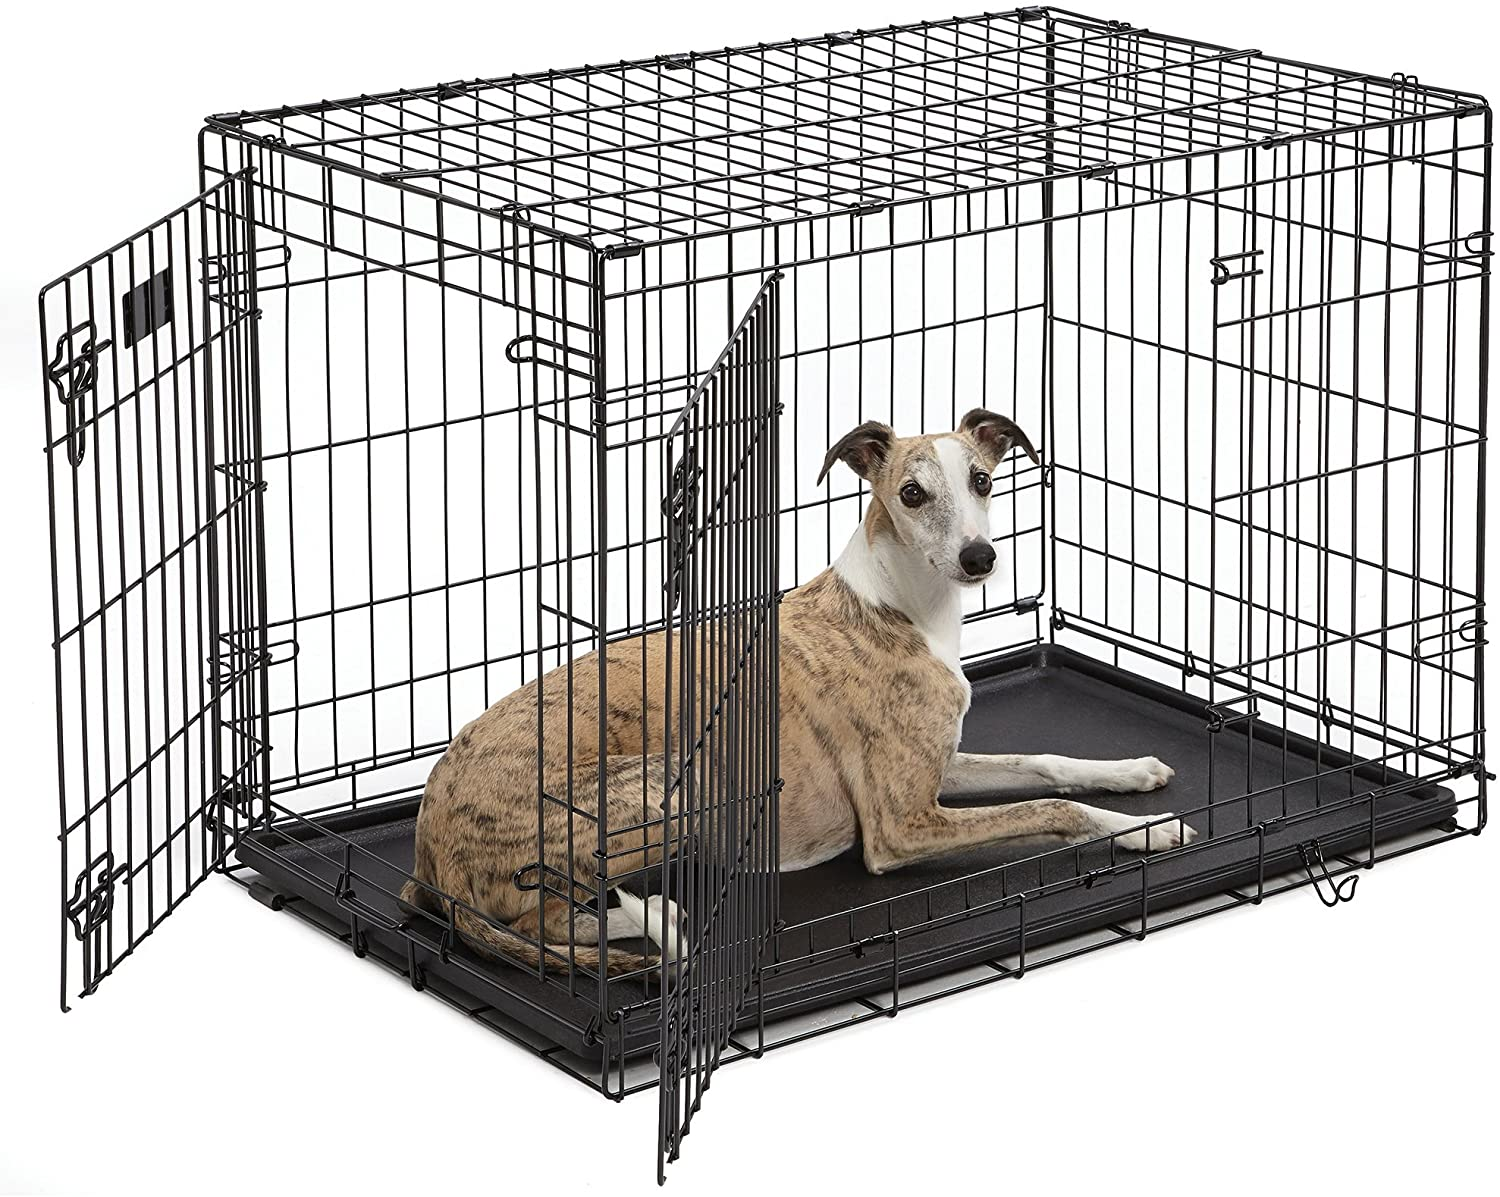 Doggy Housing: Can a Dog Crate Be Too Big